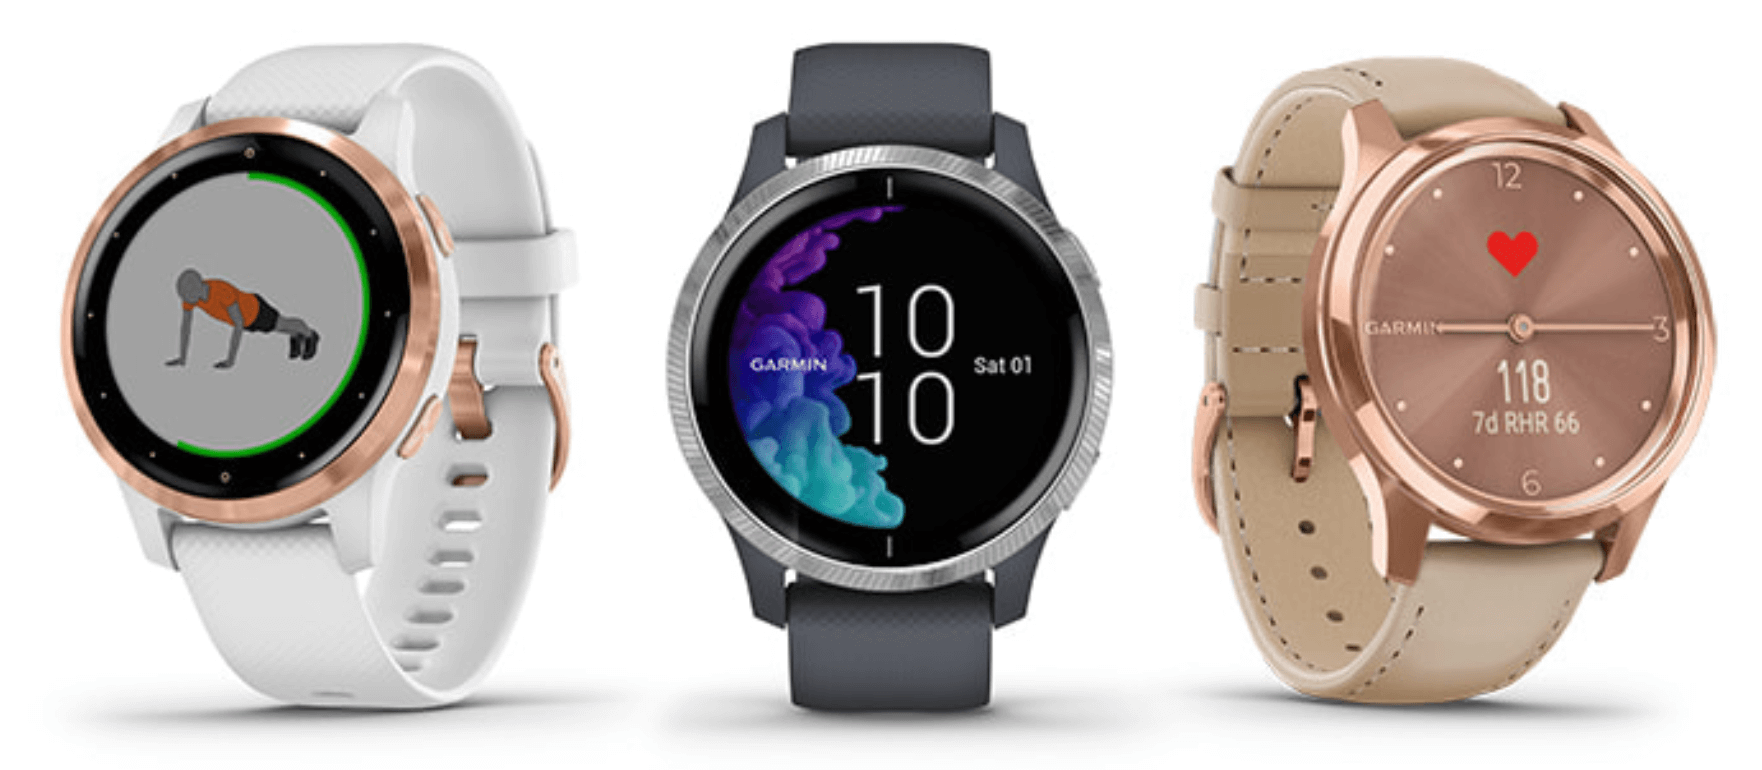 garmin smartwatches ifa 2019 - Image by Garmin